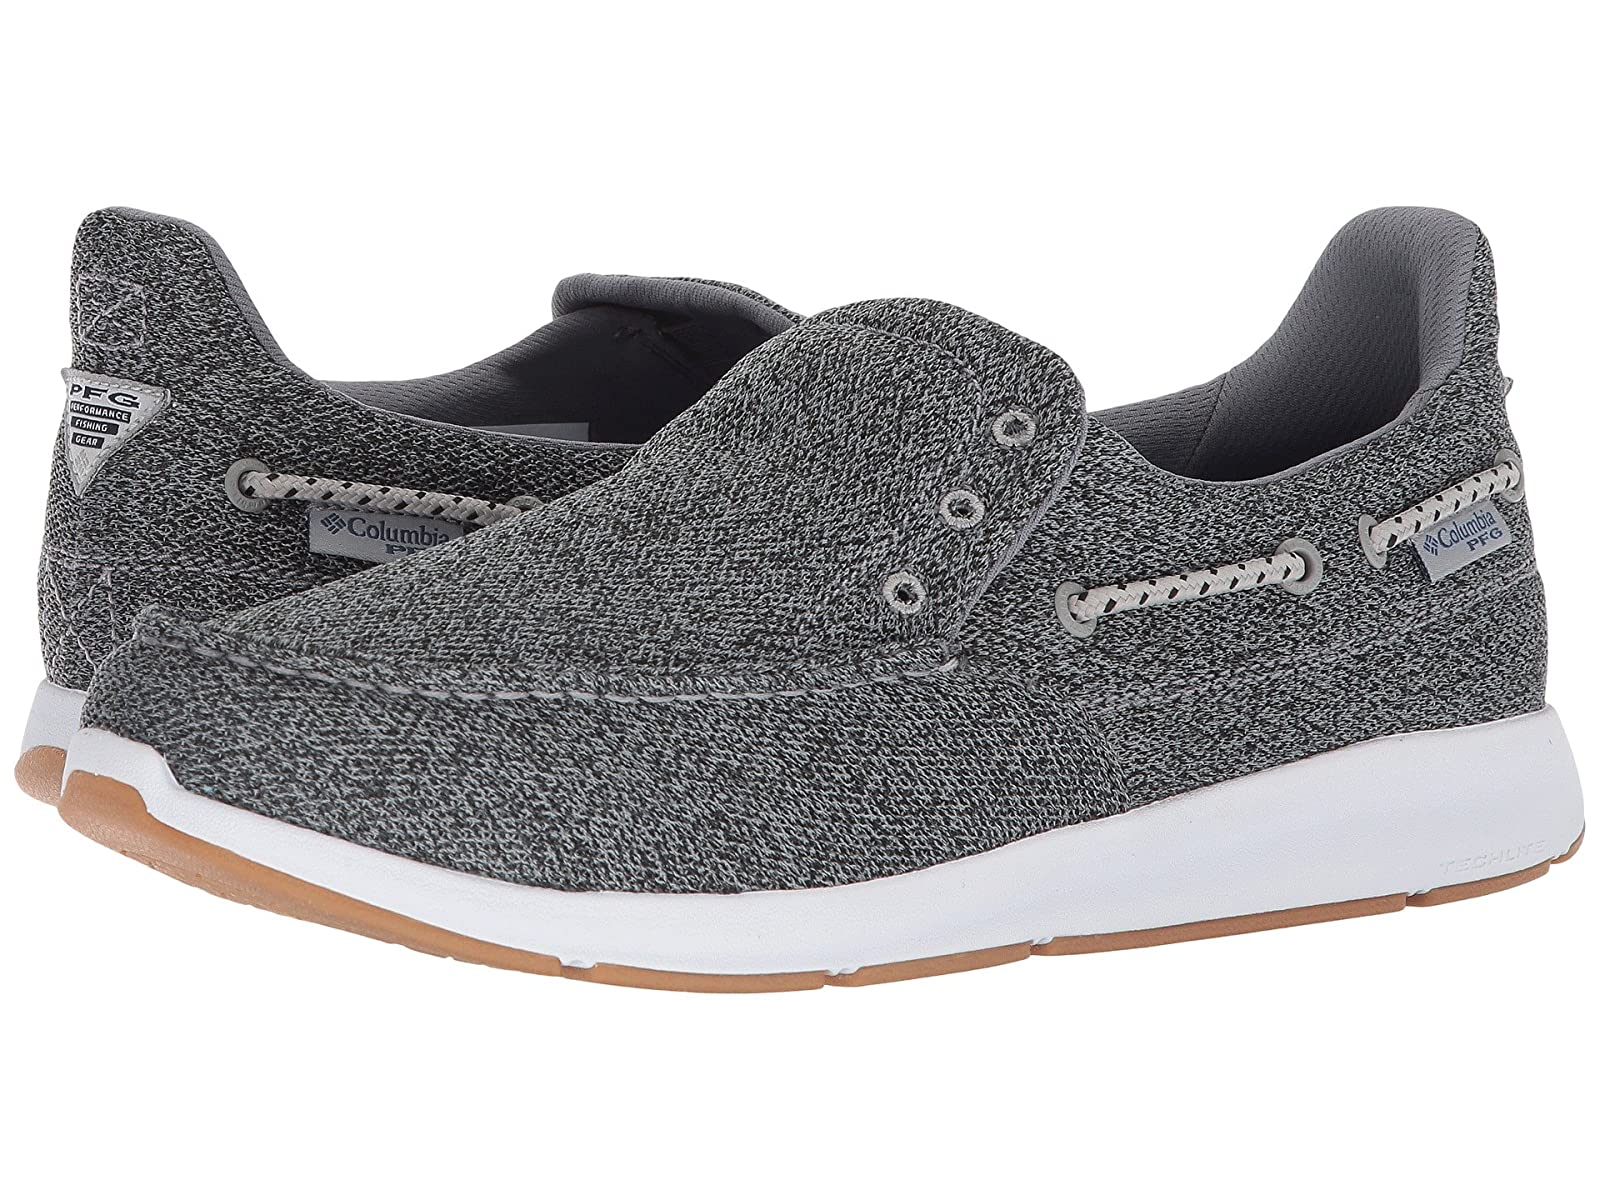 Columbia Delray Slip PFGCheap and distinctive eye-catching shoes